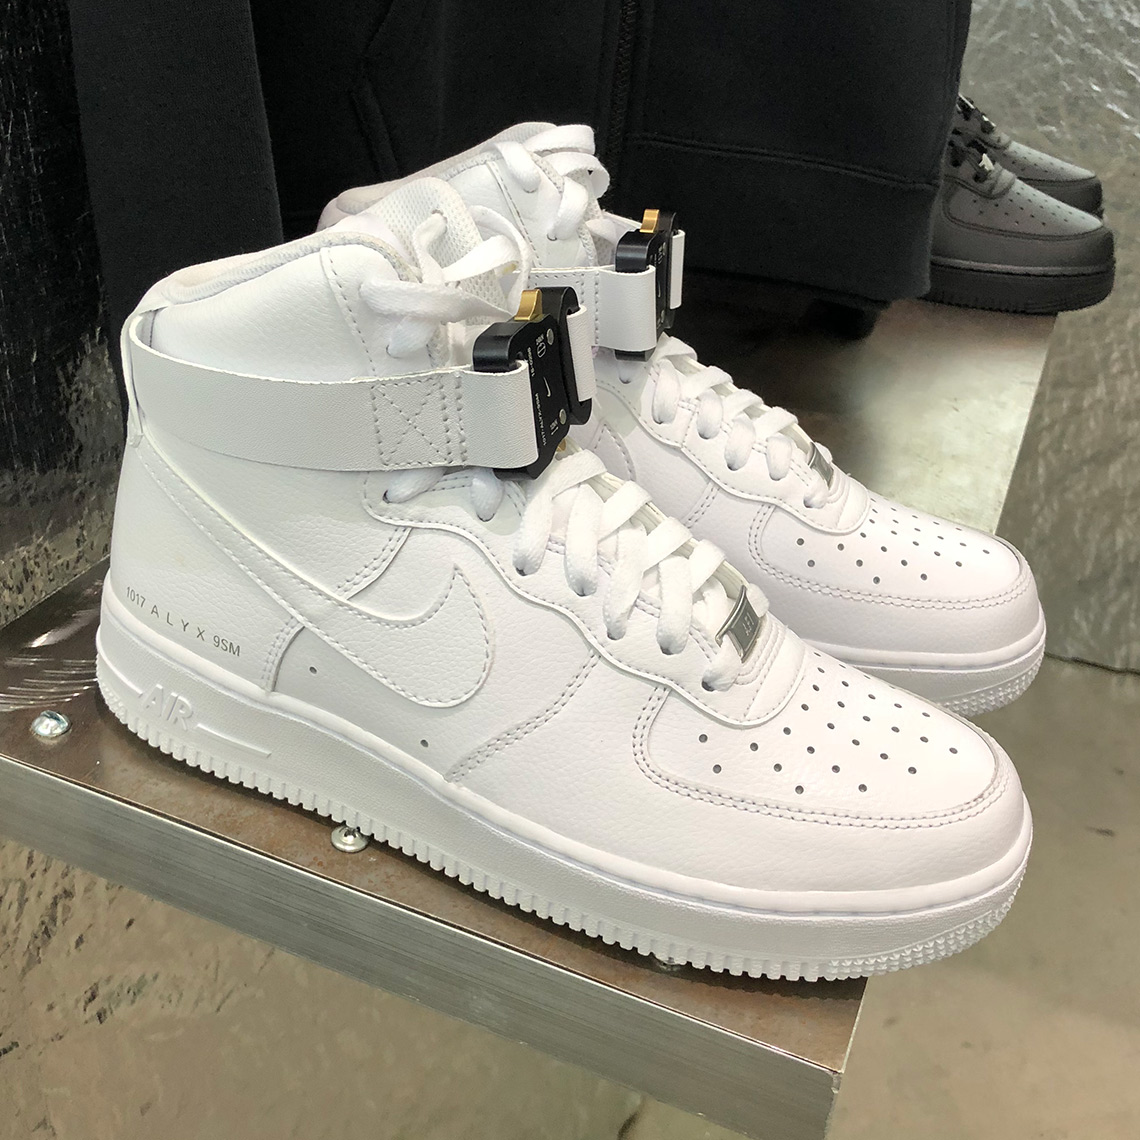 ALYX Reveal The Nike Air Force 1 High At Hypefest | The Sole